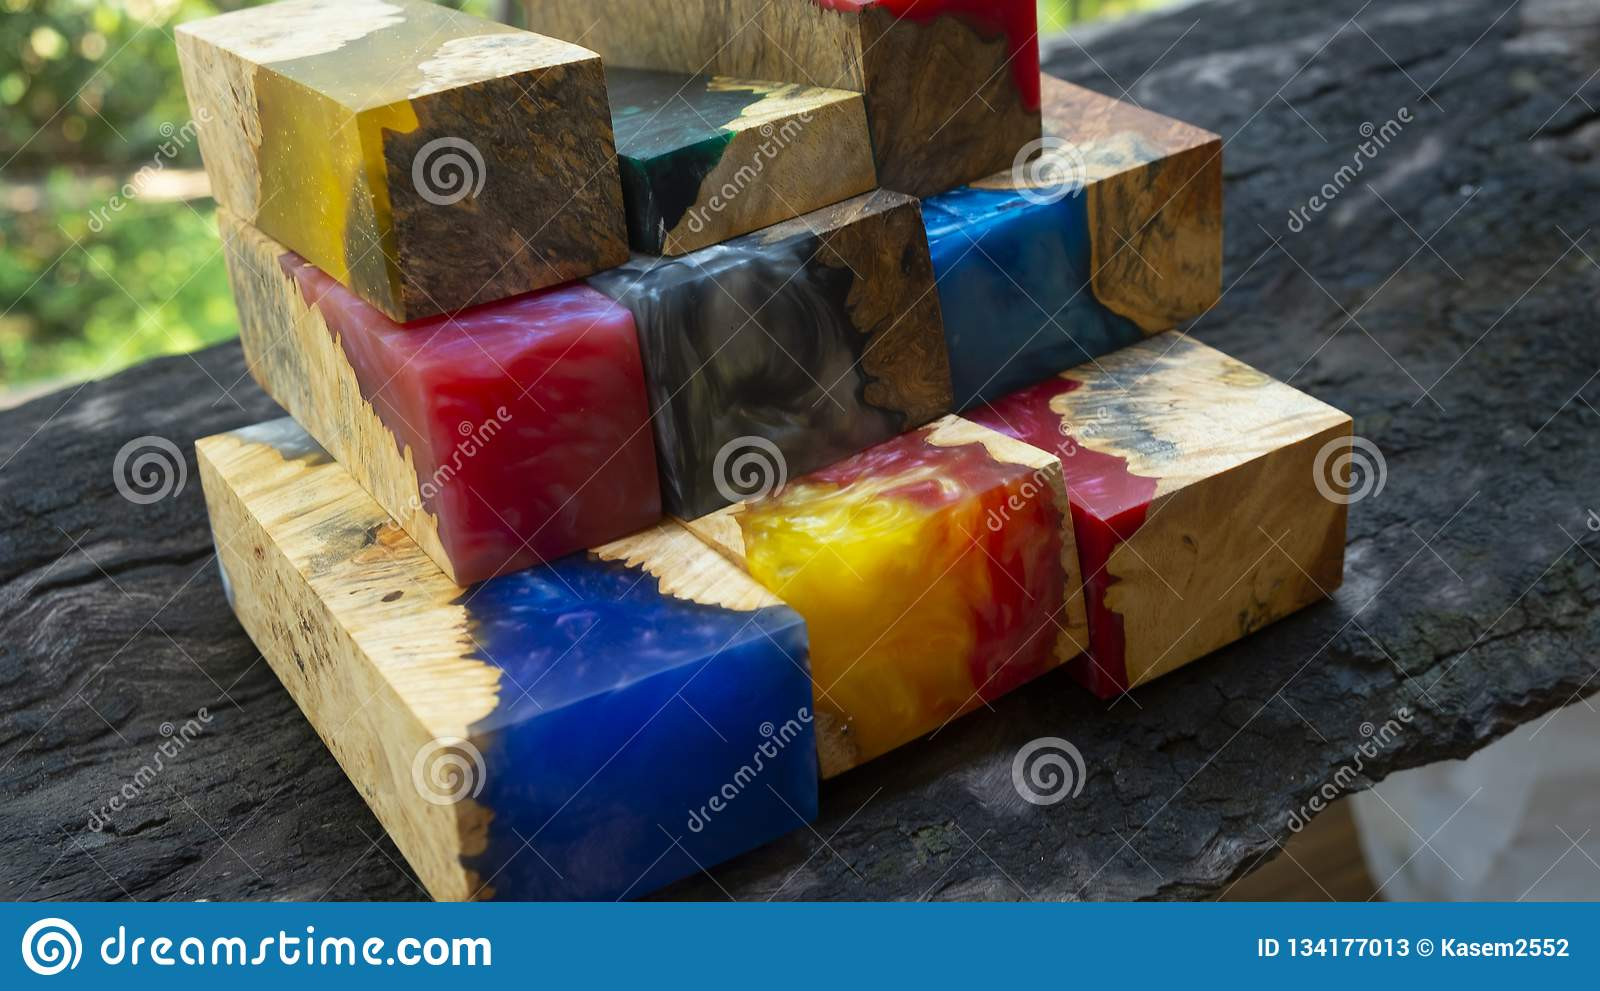 Epoxy resin wood stock image  Image of lava, gold, color - 134177013